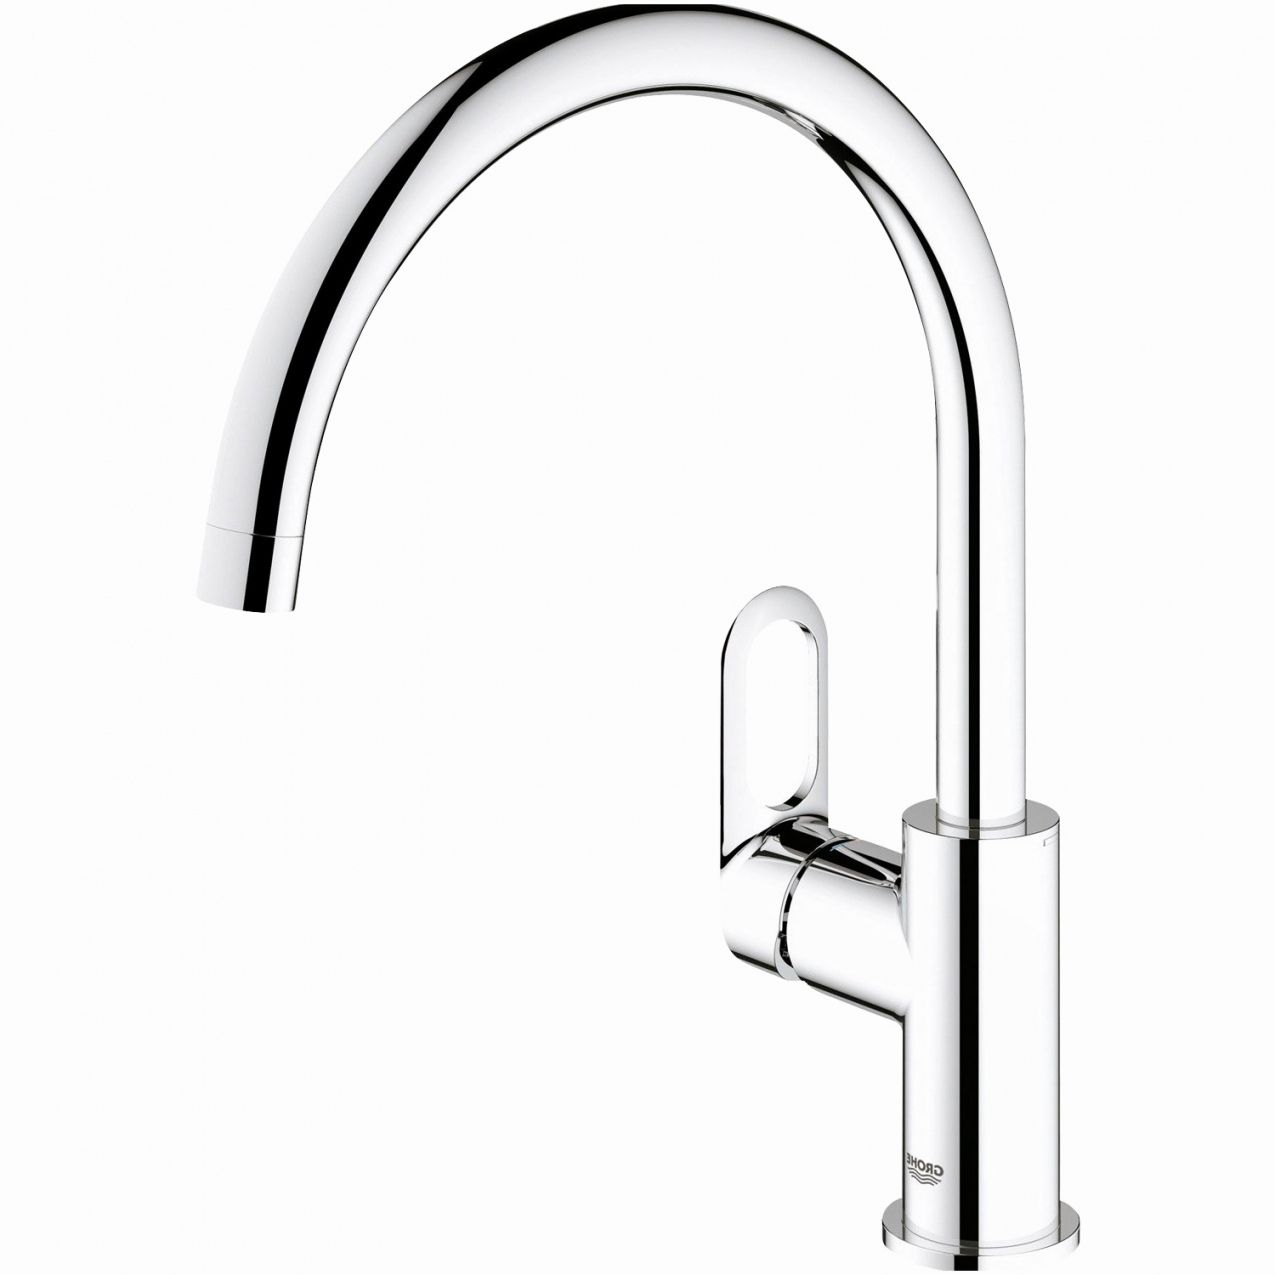 70 Robinet Mitigeur Cuisine Grohe 2019 Beautiful Home Decor Sink